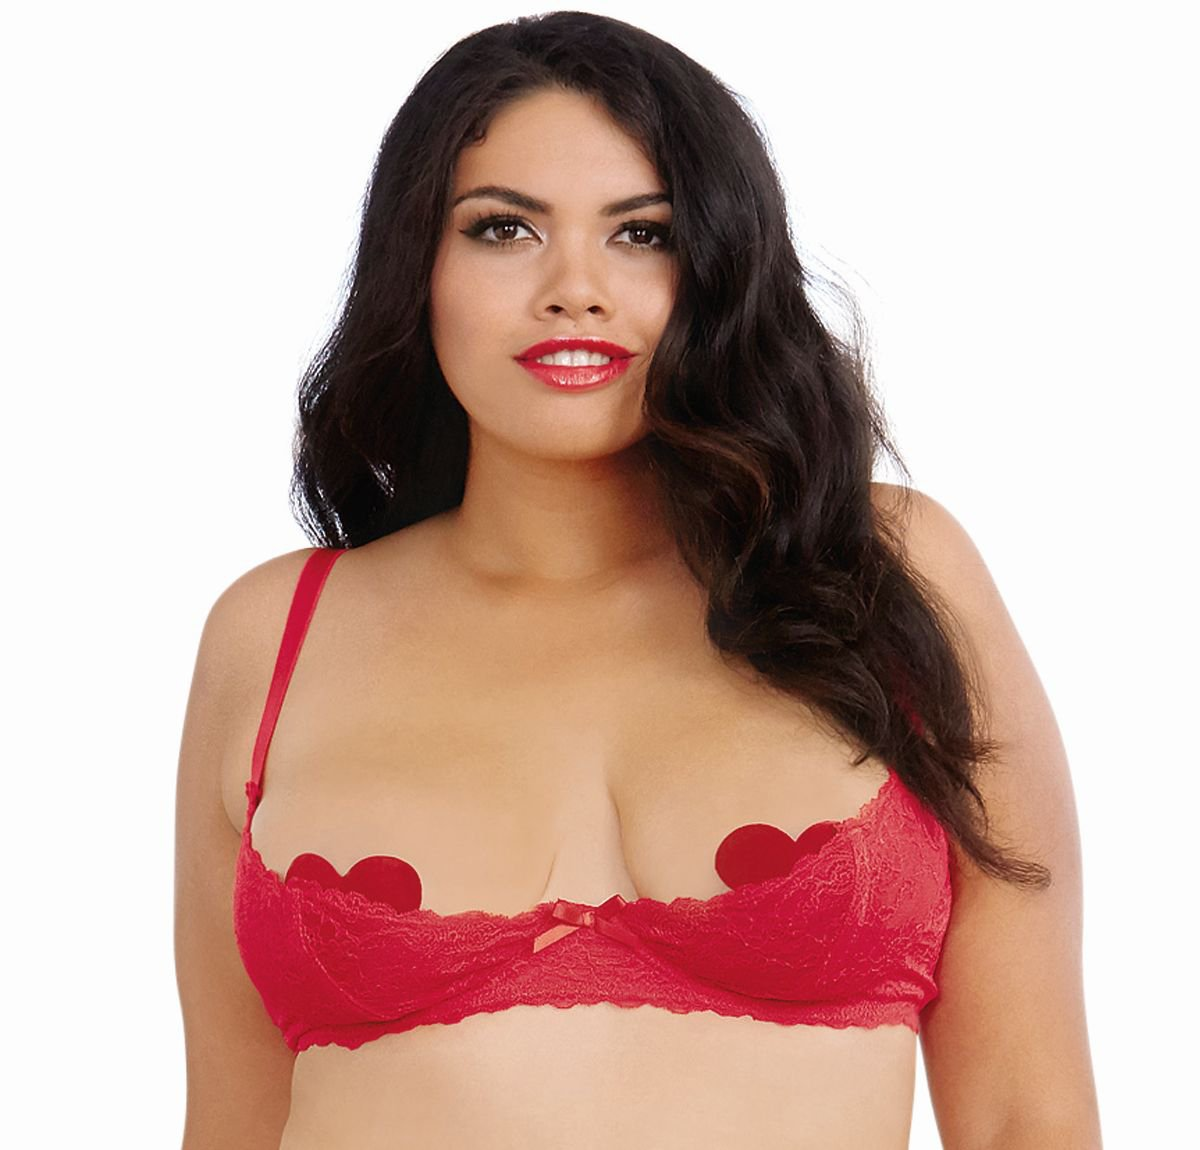 DreamGirl Womens Plus-Size Plus Size Lace Open Cup Underwire Shelf Bra Dreamgirl International 9386X